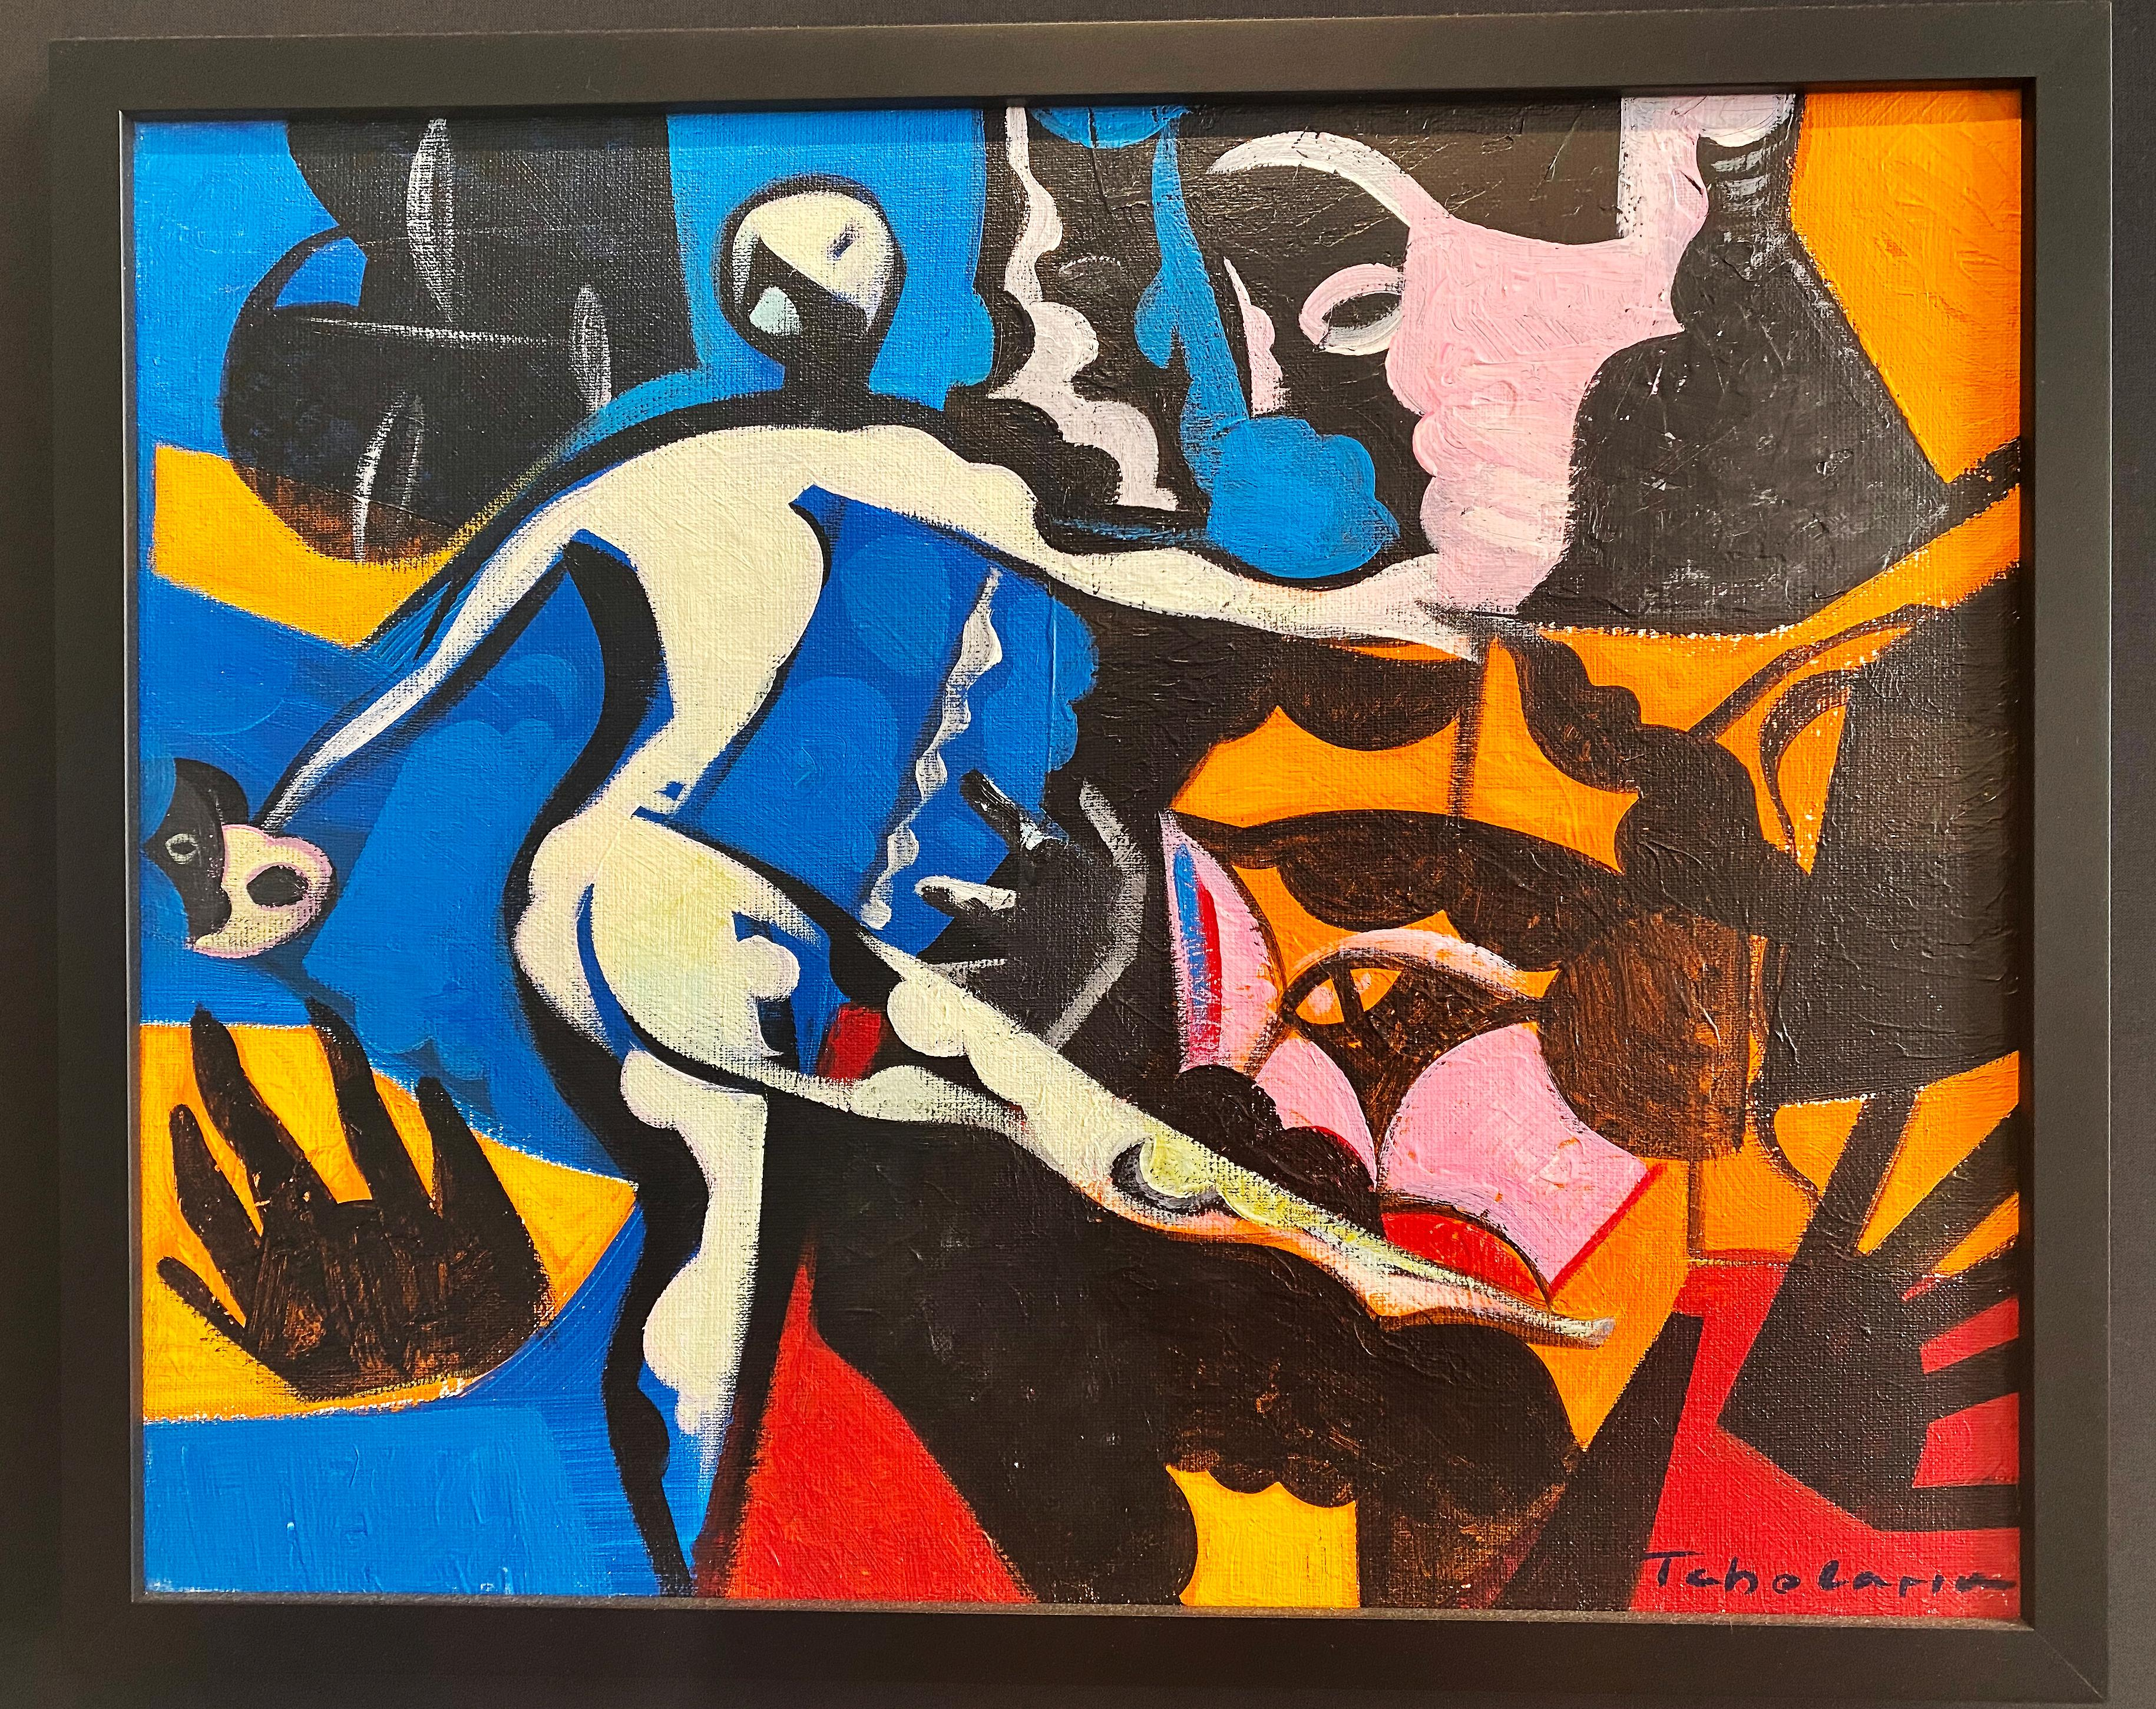 Dance With Me, Oil and Acrylic on Canvas, European Modernist Tradition